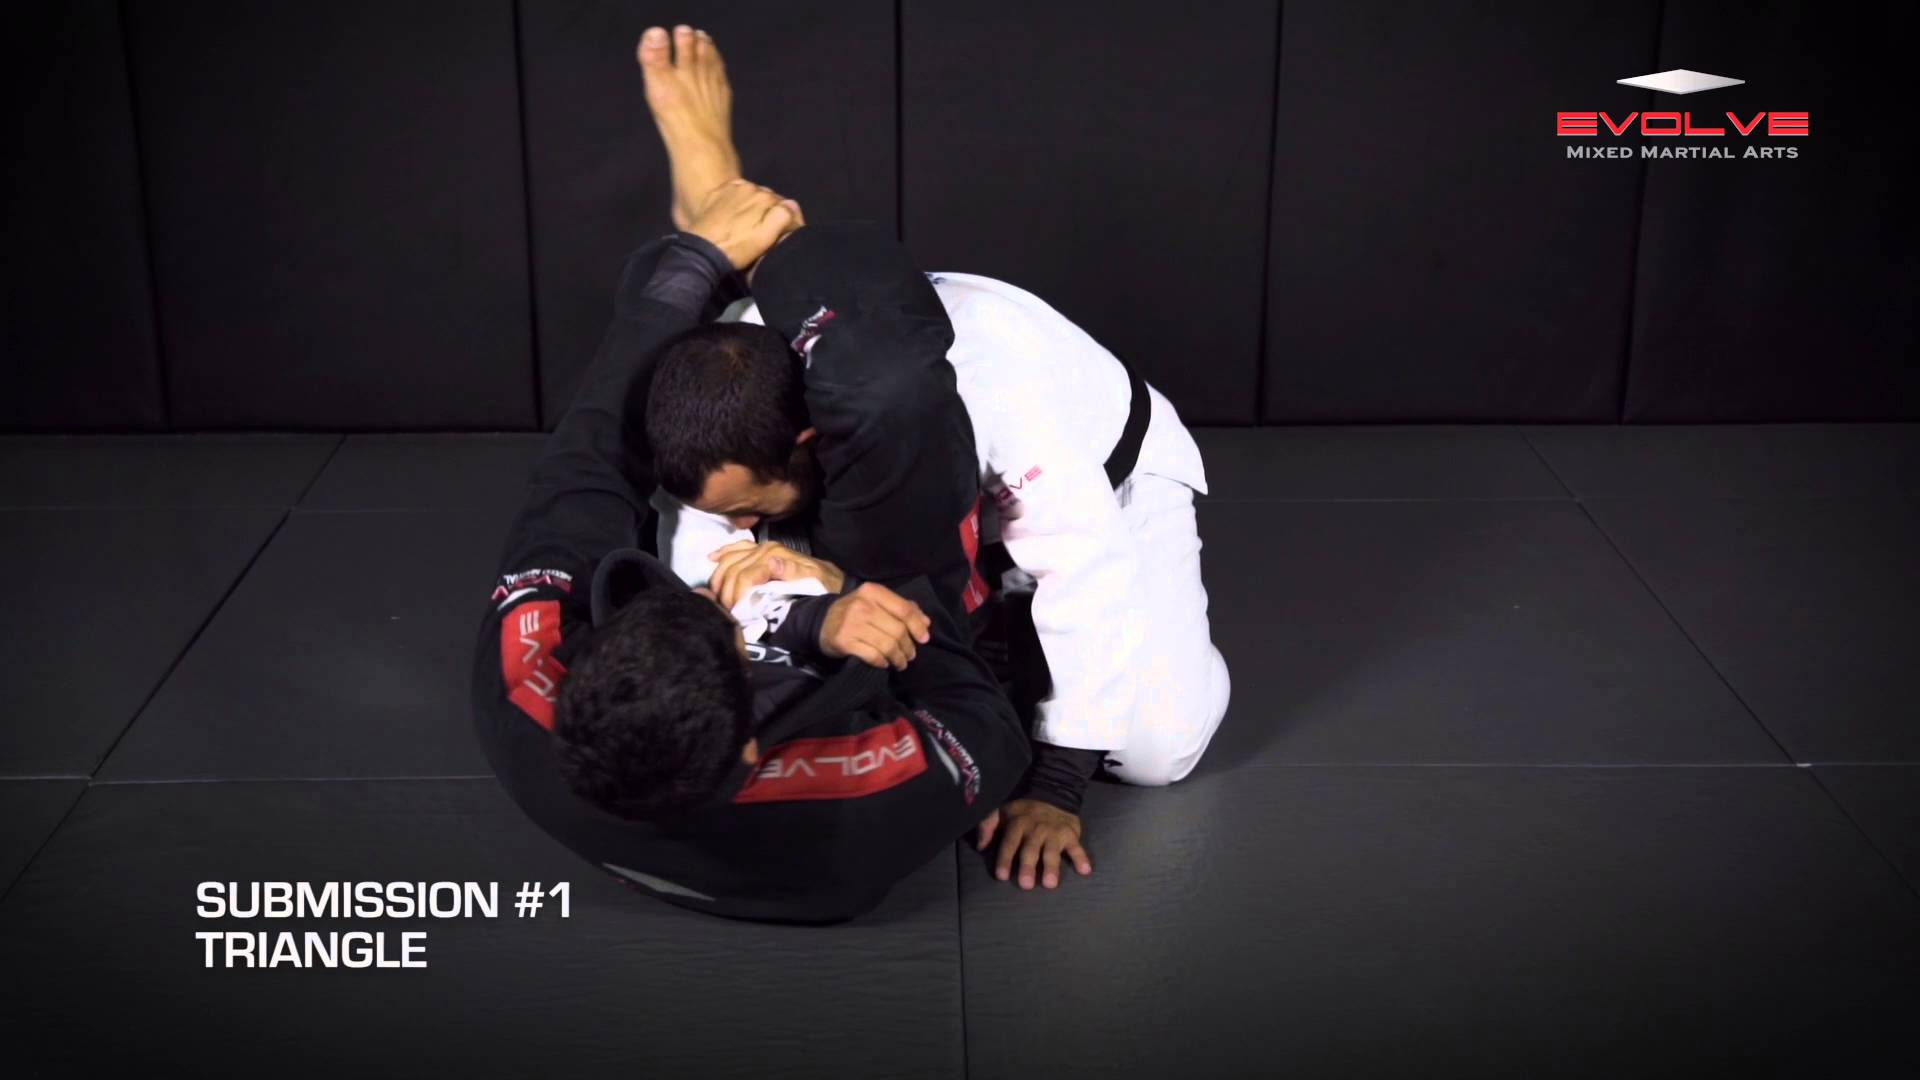 5 Essential Submissions From The Triangle Position